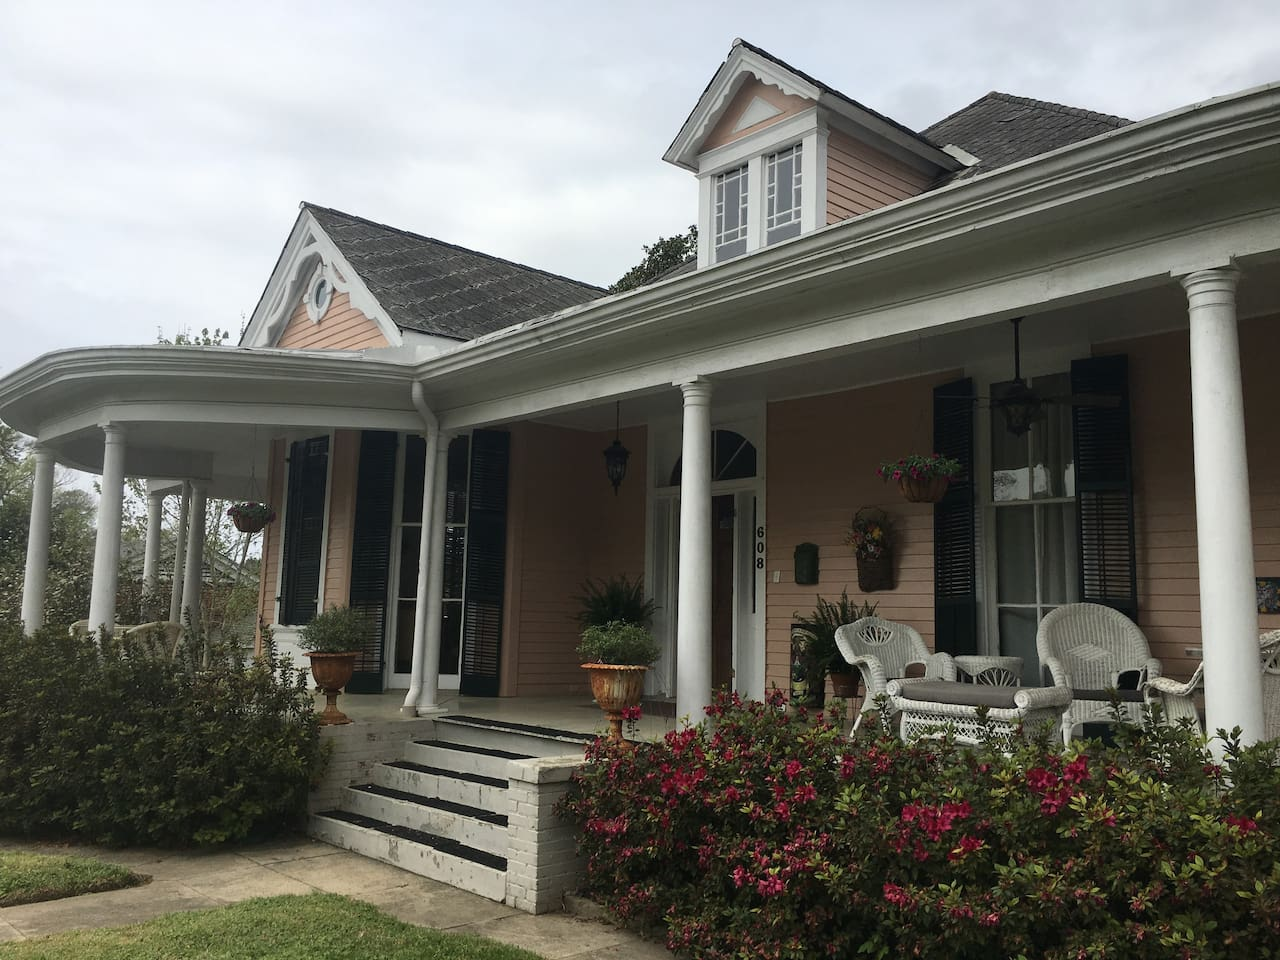 la perl Bed and Breakfast